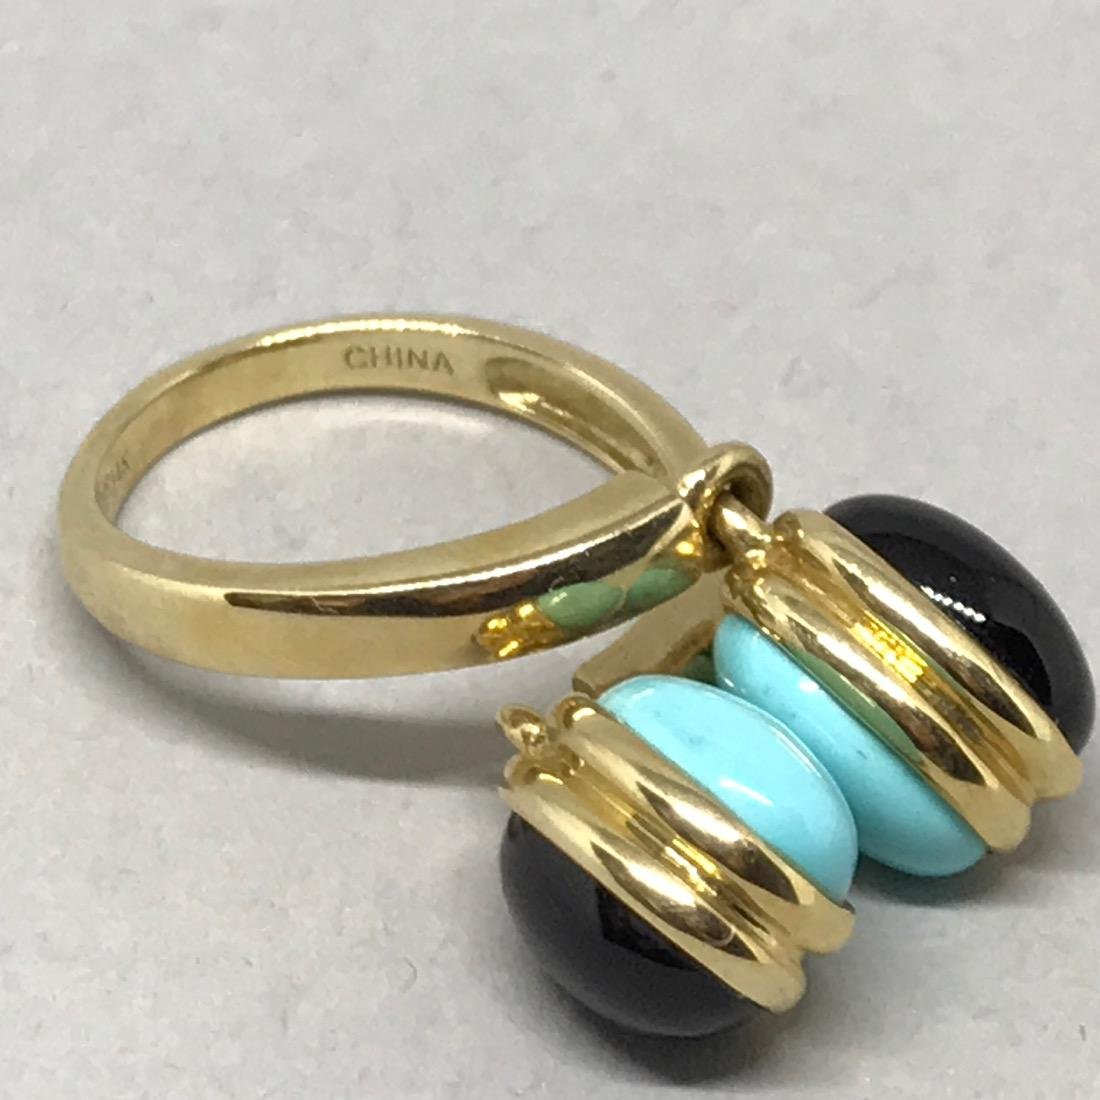 14Kt Gold Ring with Onyx & Turquoise - 4